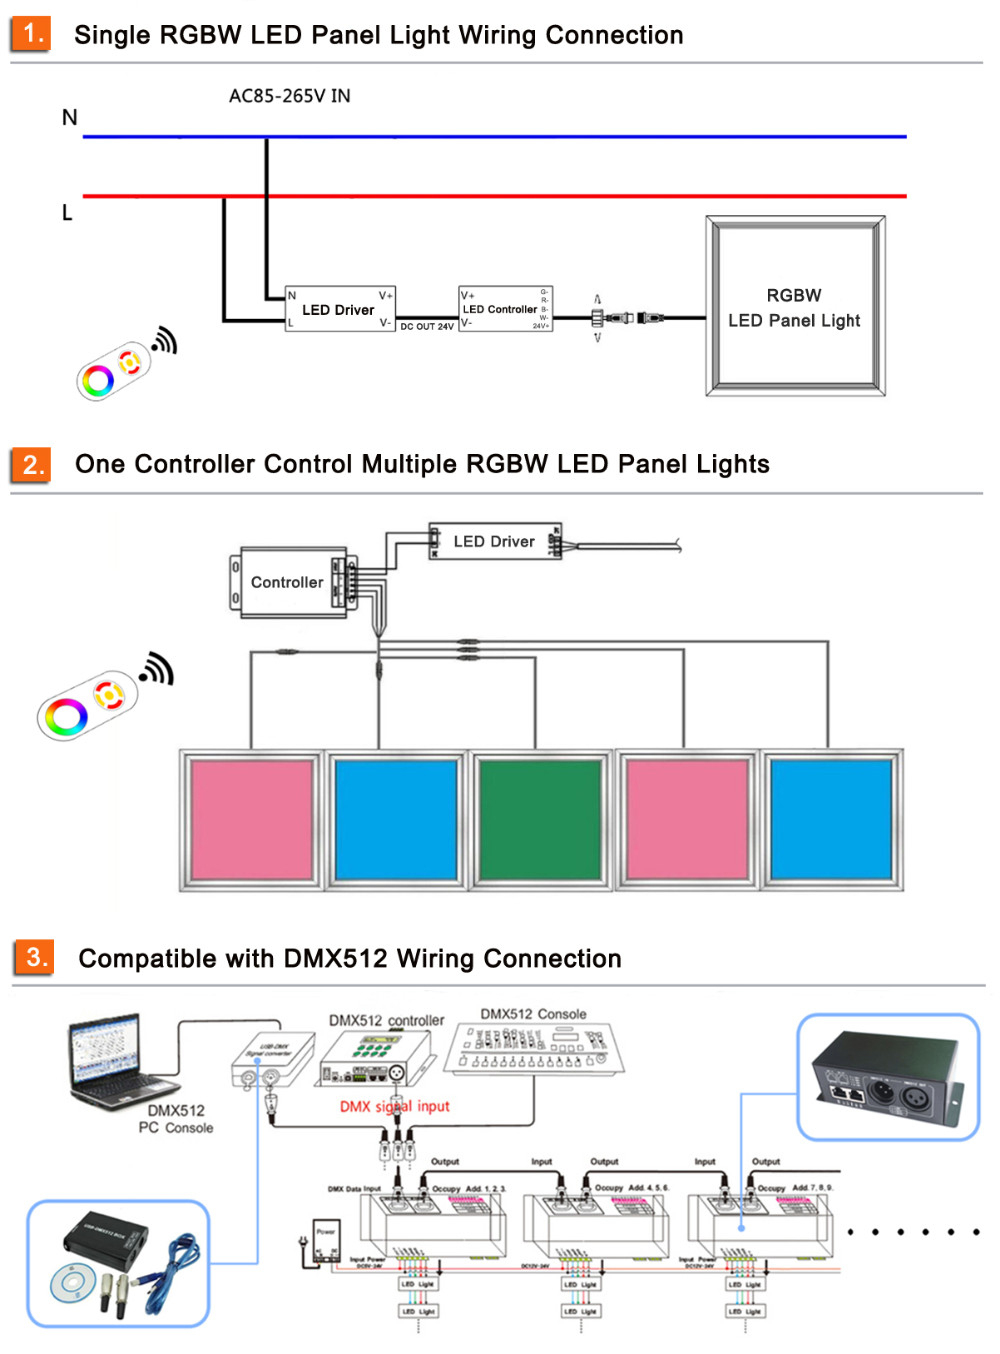 Led Panel Wiring Diagram | Schematic Diagram - Ceiling Light Wiring Diagram